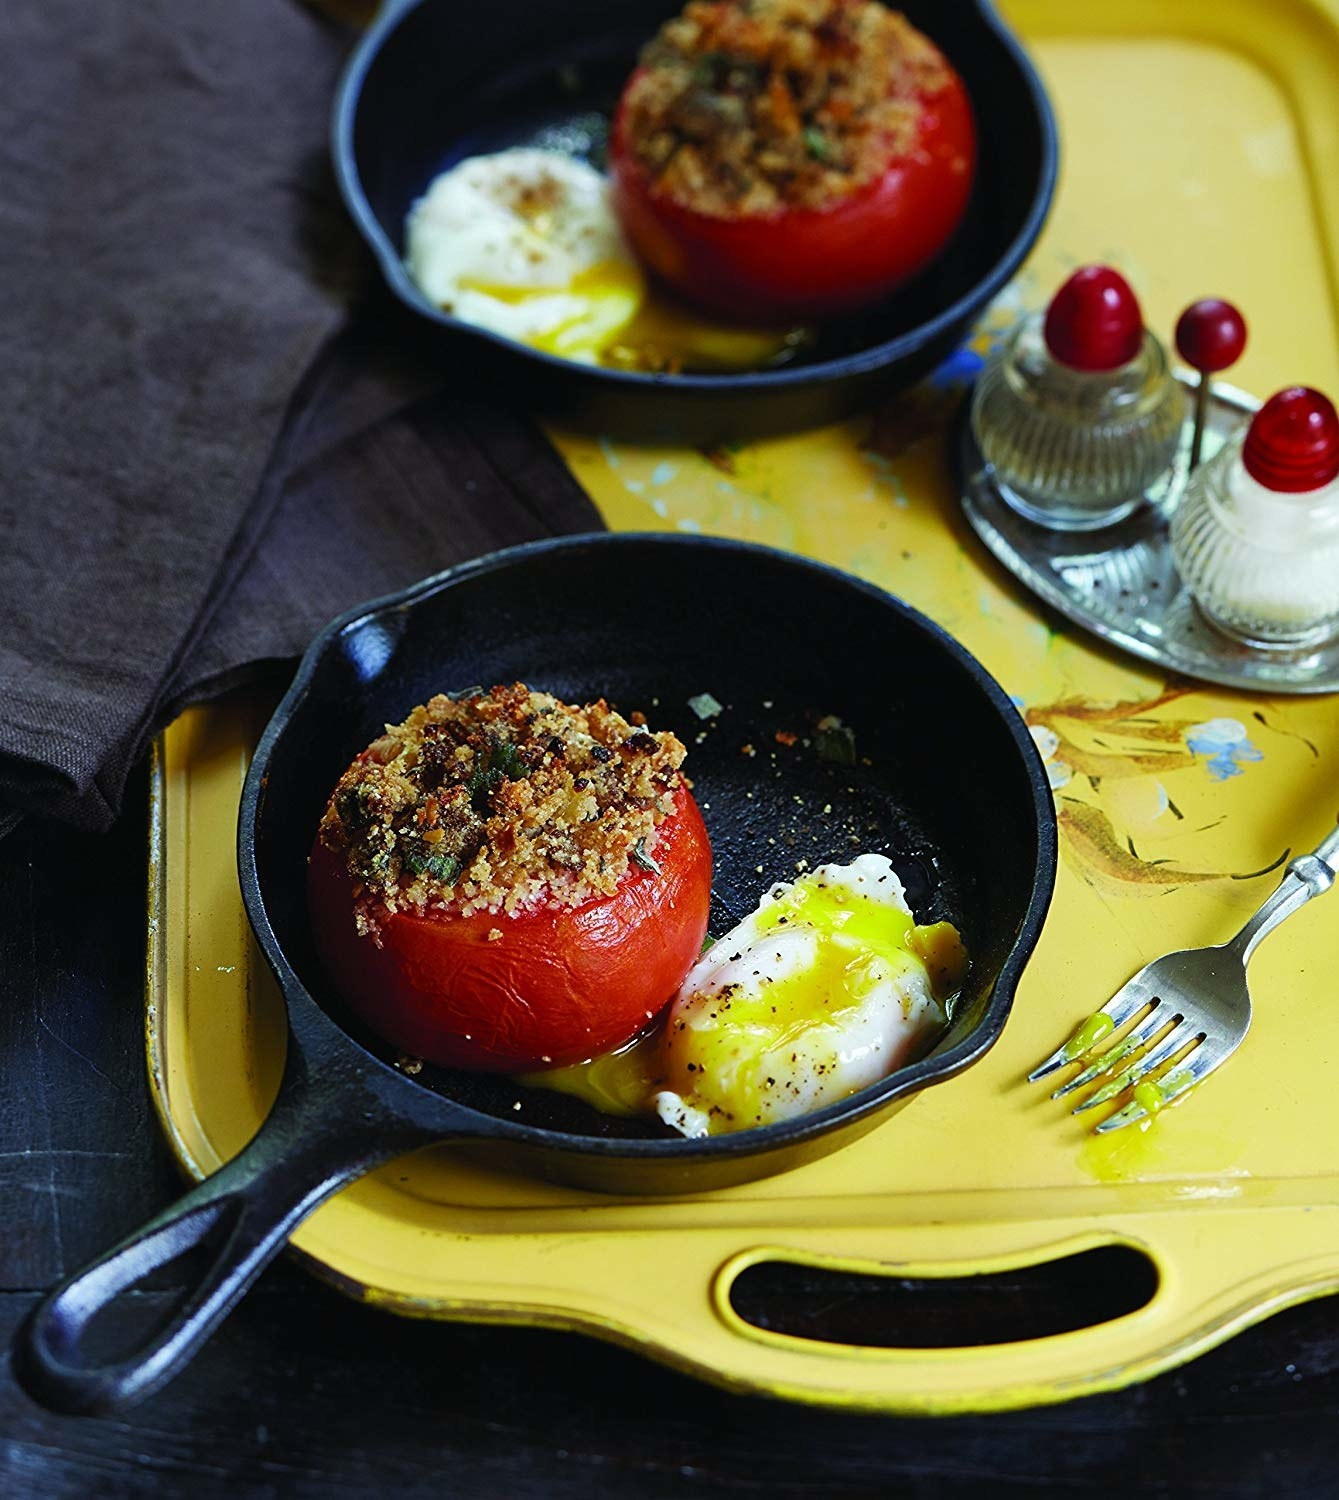 A small skillet that is holding a stuffed tomato and a poached egg